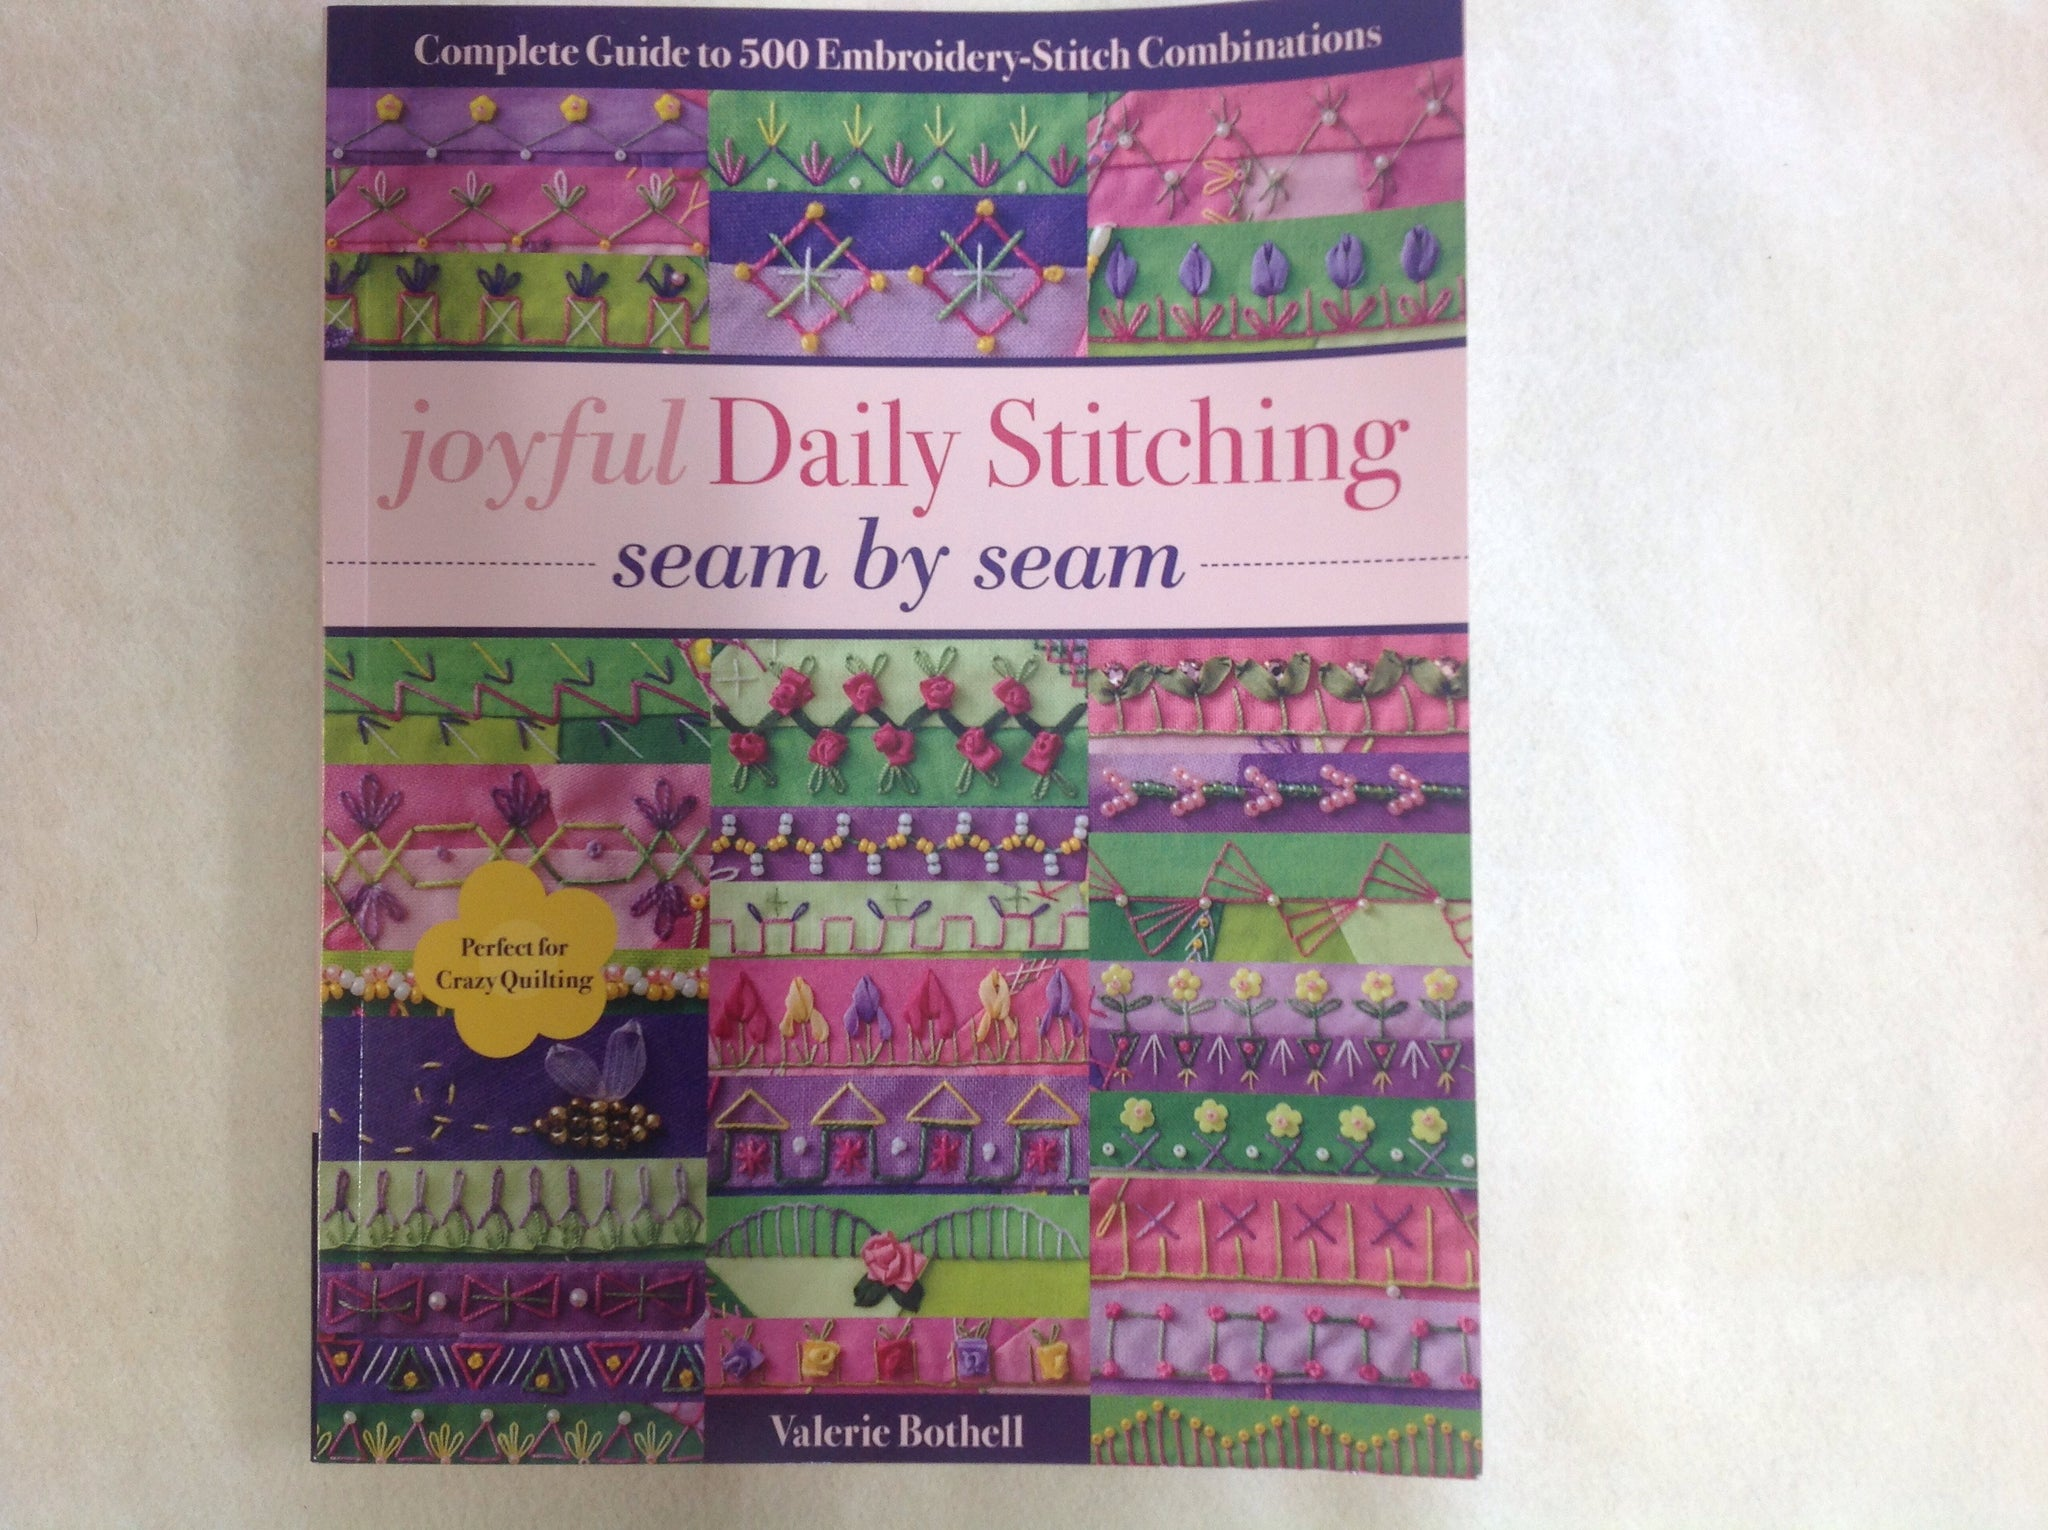 Joyful Daily Stitching by Valerie Bothell